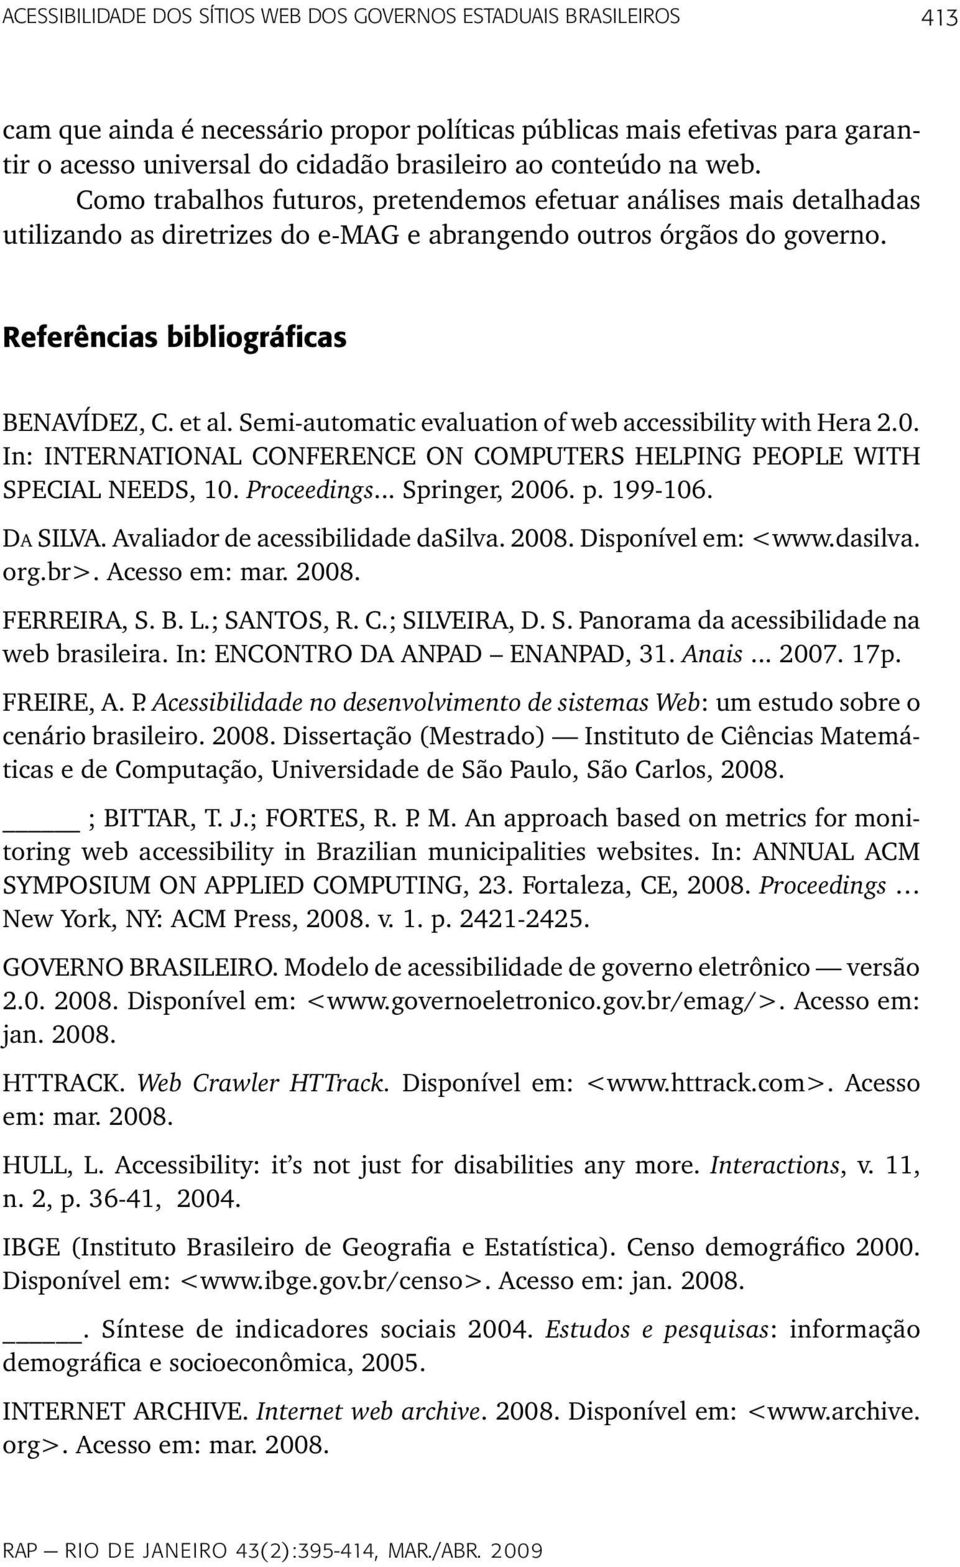 et al. Semi-automatic evaluation of web accessibility with Hera.0. In: INTERNATIONAL CONFERENCE ON COMPUTERS HELPING PEOPLE WITH SPECIAL NEEDS, 0. Proceedings... Springer, 006. p. 99-06. Da SILVA.